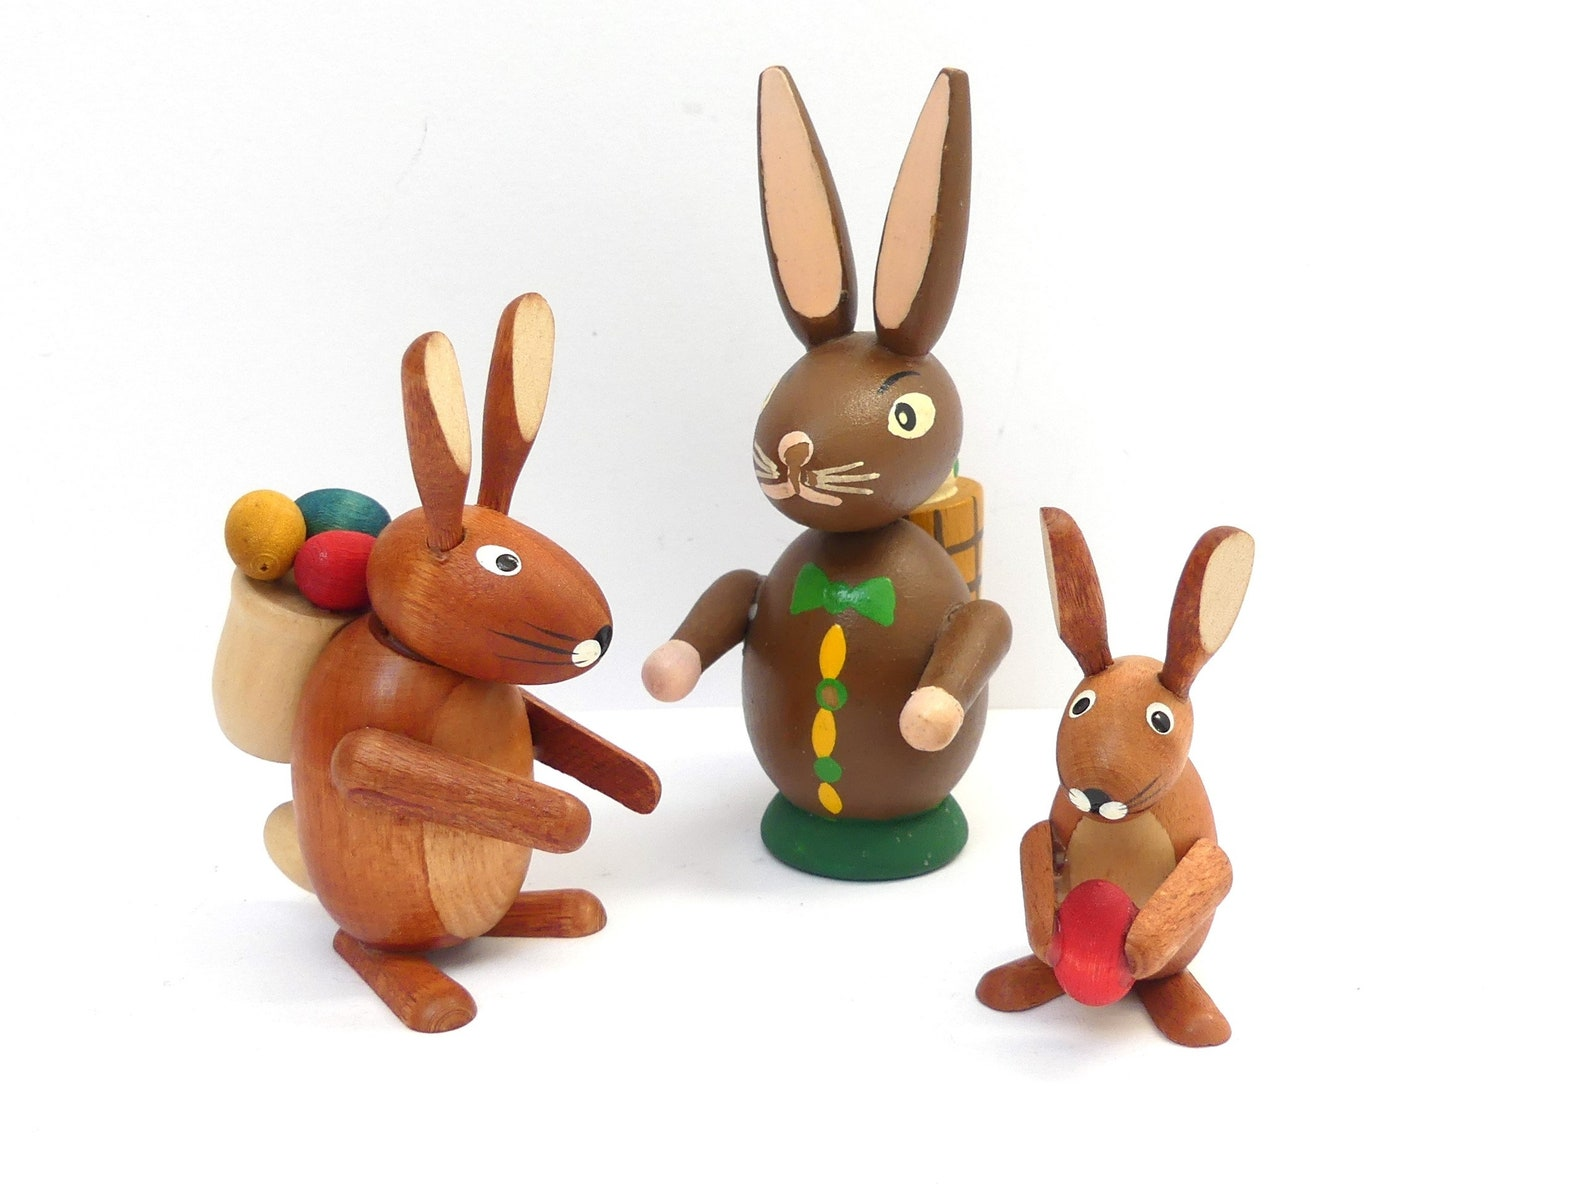 Easter Bunny Figurines 3 Wood Erzgebirge Rabbits Vintage Germany Handmade Rustic Decoration Spring Bunnies Collectible Wood Toy Spring Decor